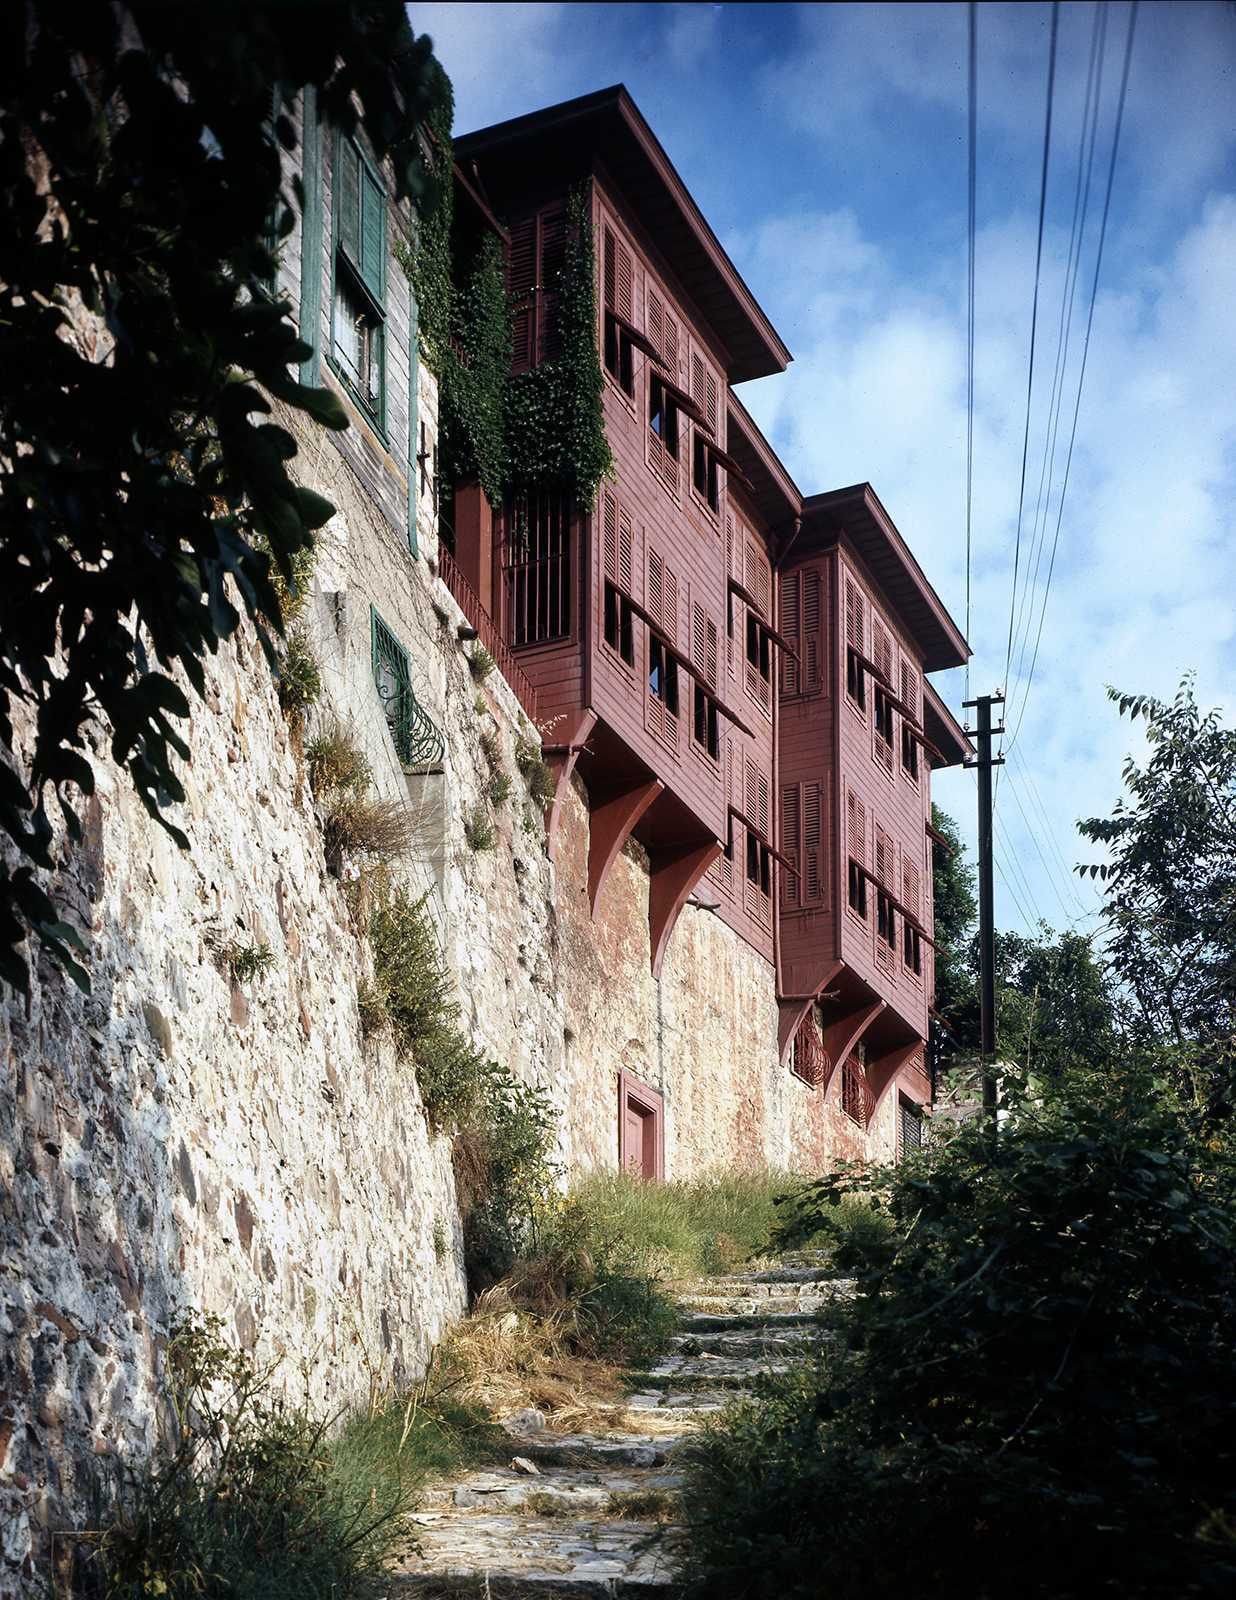 Curuksulu Mansion, Uskudar, 1974. The last restoration was realized by Turgut Cansever and Reha Gunay in 1970-1973.